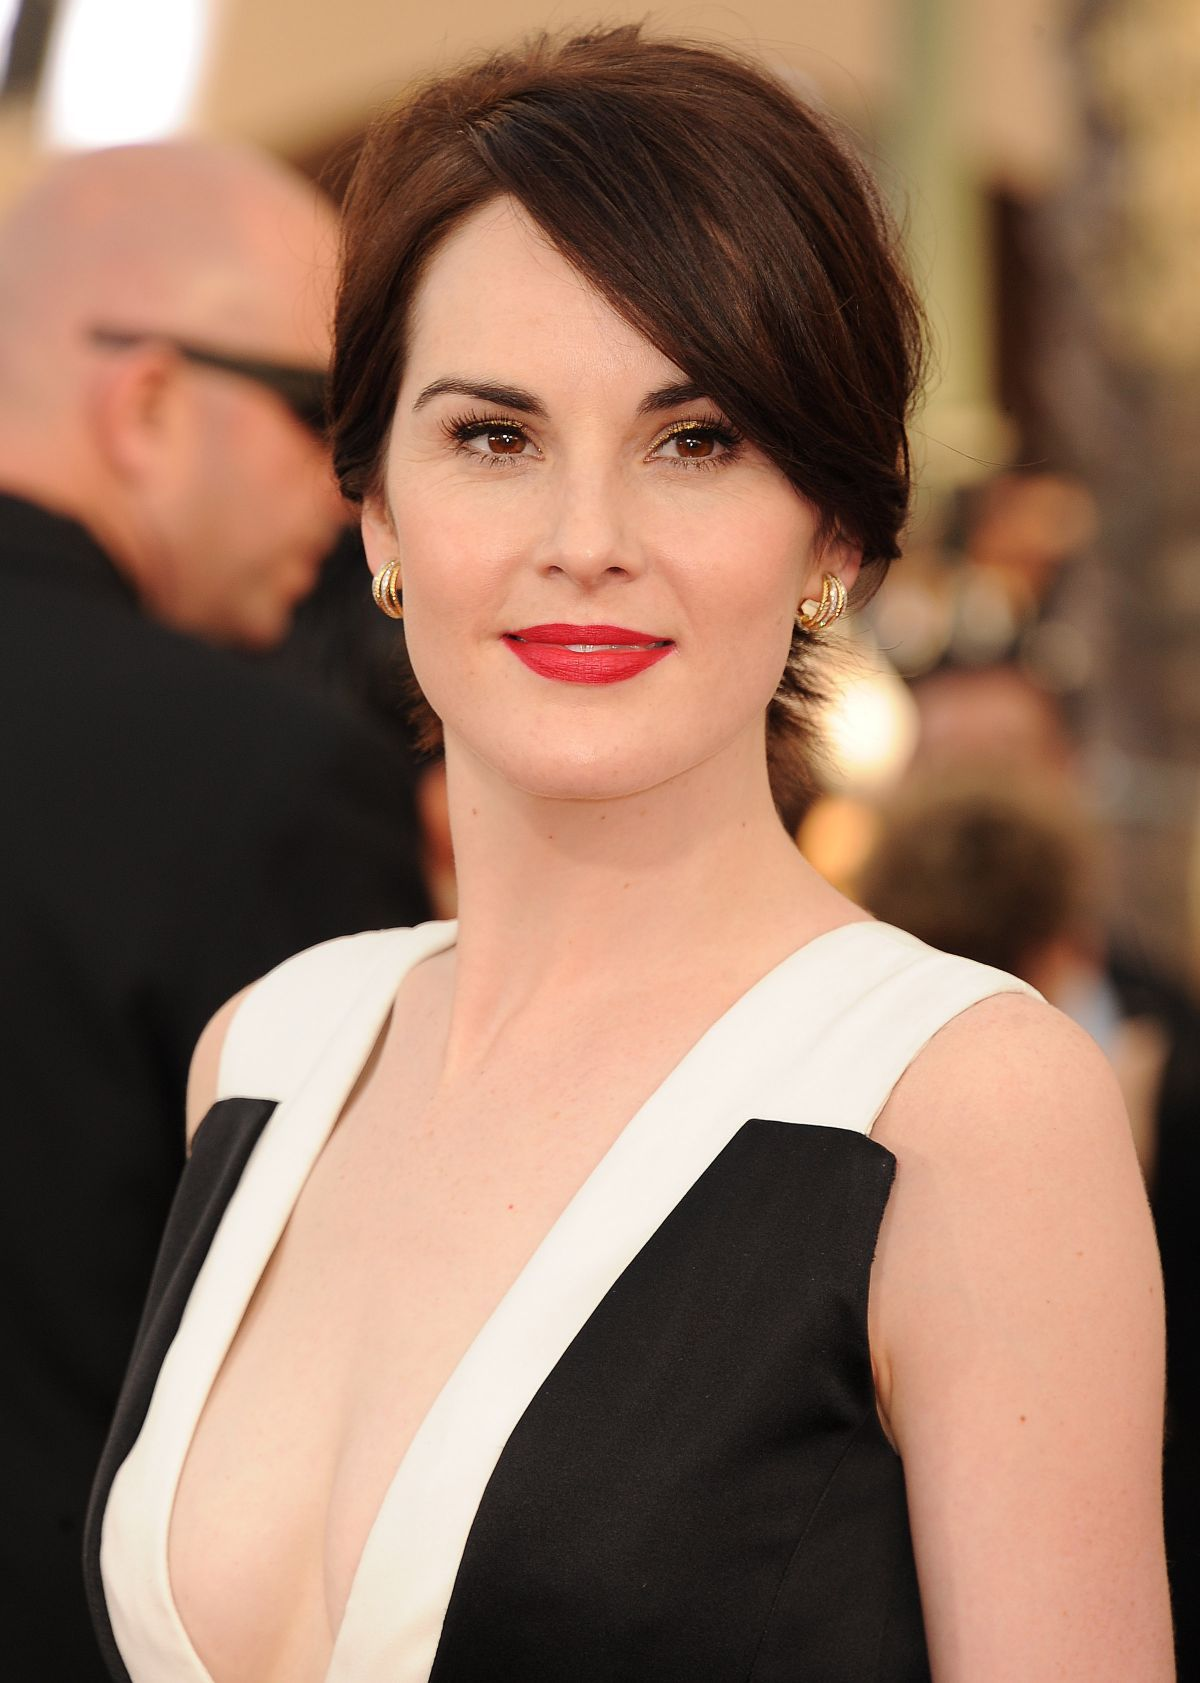 Image result for michelle dockery